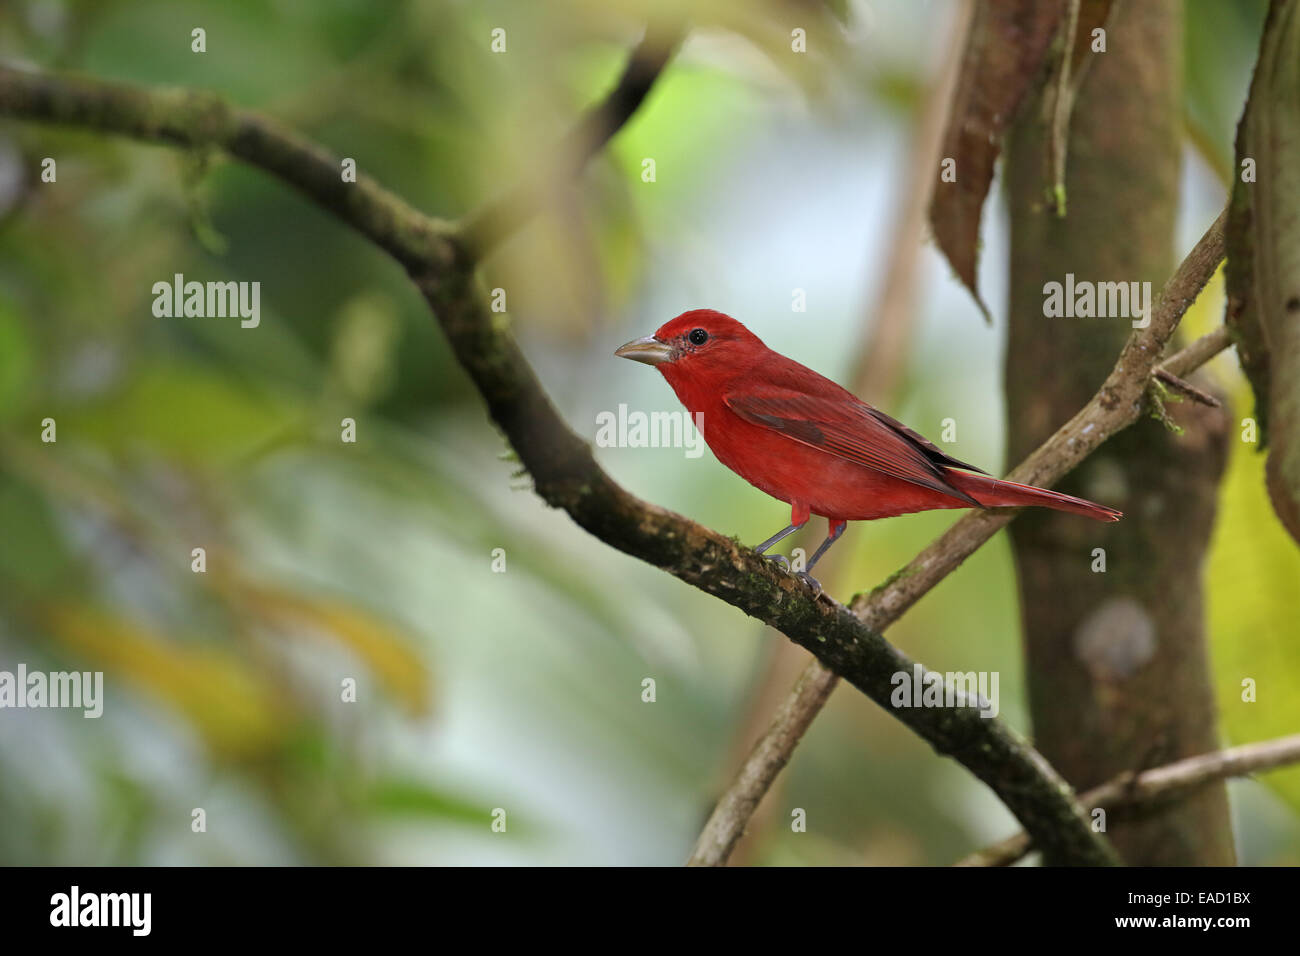 Summer Tanager, Piranga olivacea, in wintering grounds - Stock Image